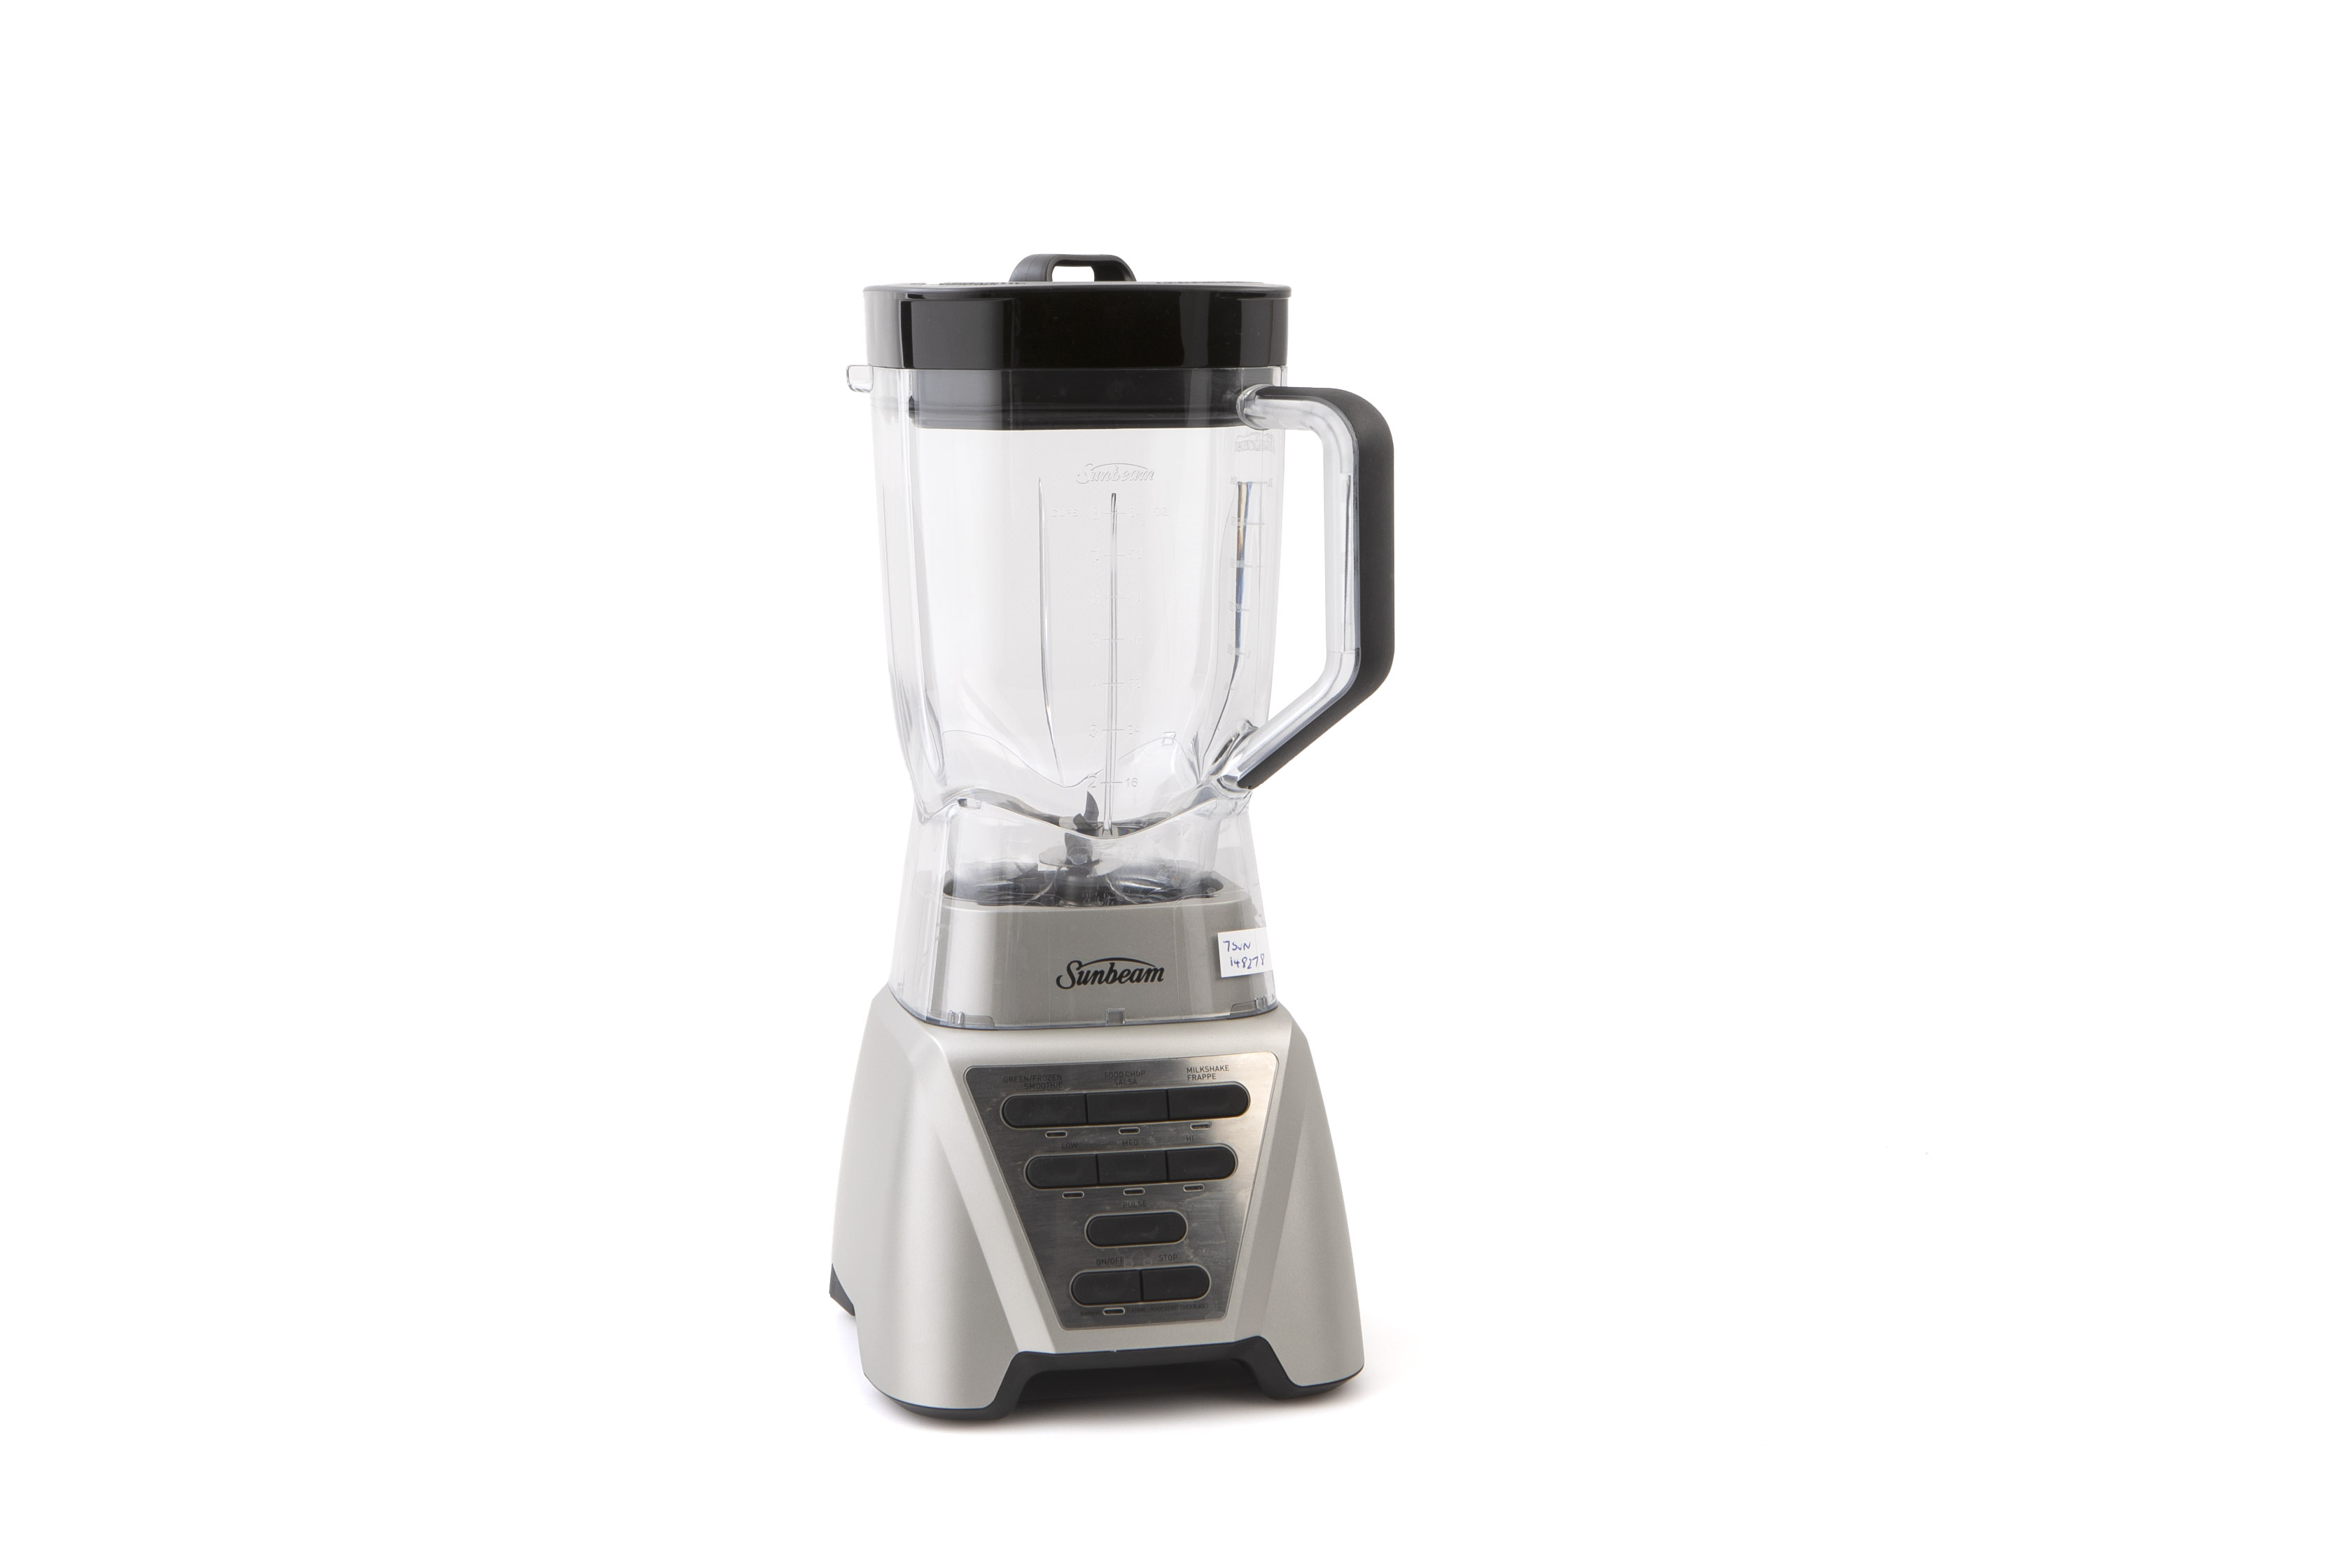 Sunbeam Two Way Blender PB8080